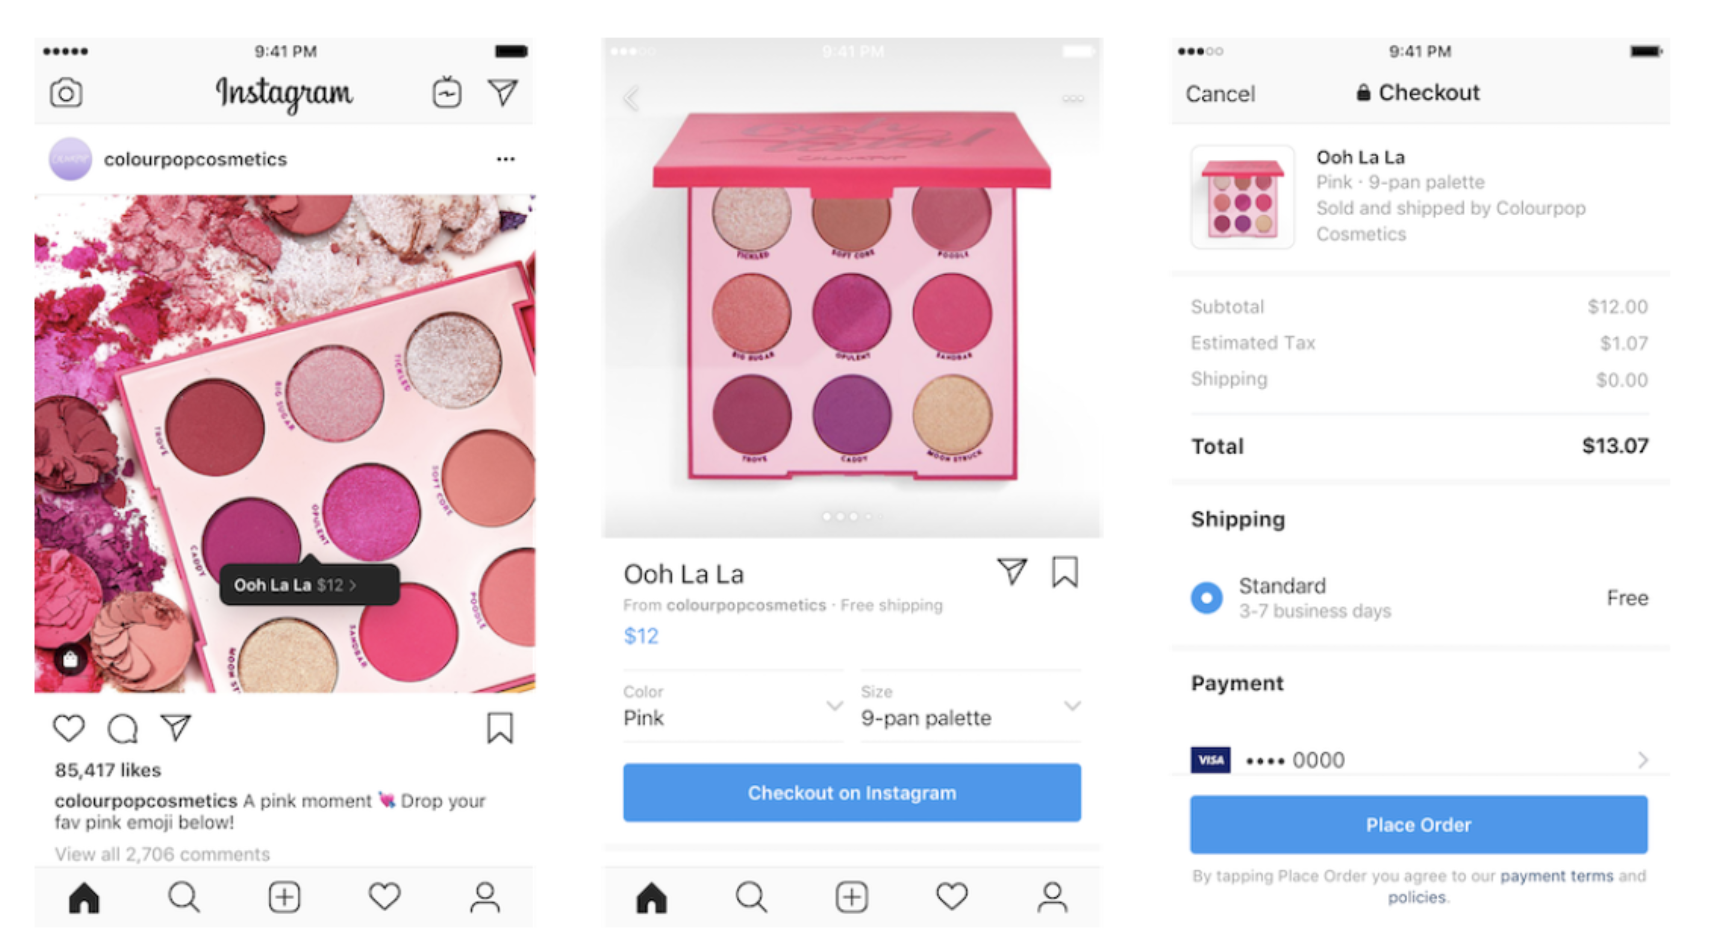 Colourpopcosmetic Instagram Checkout